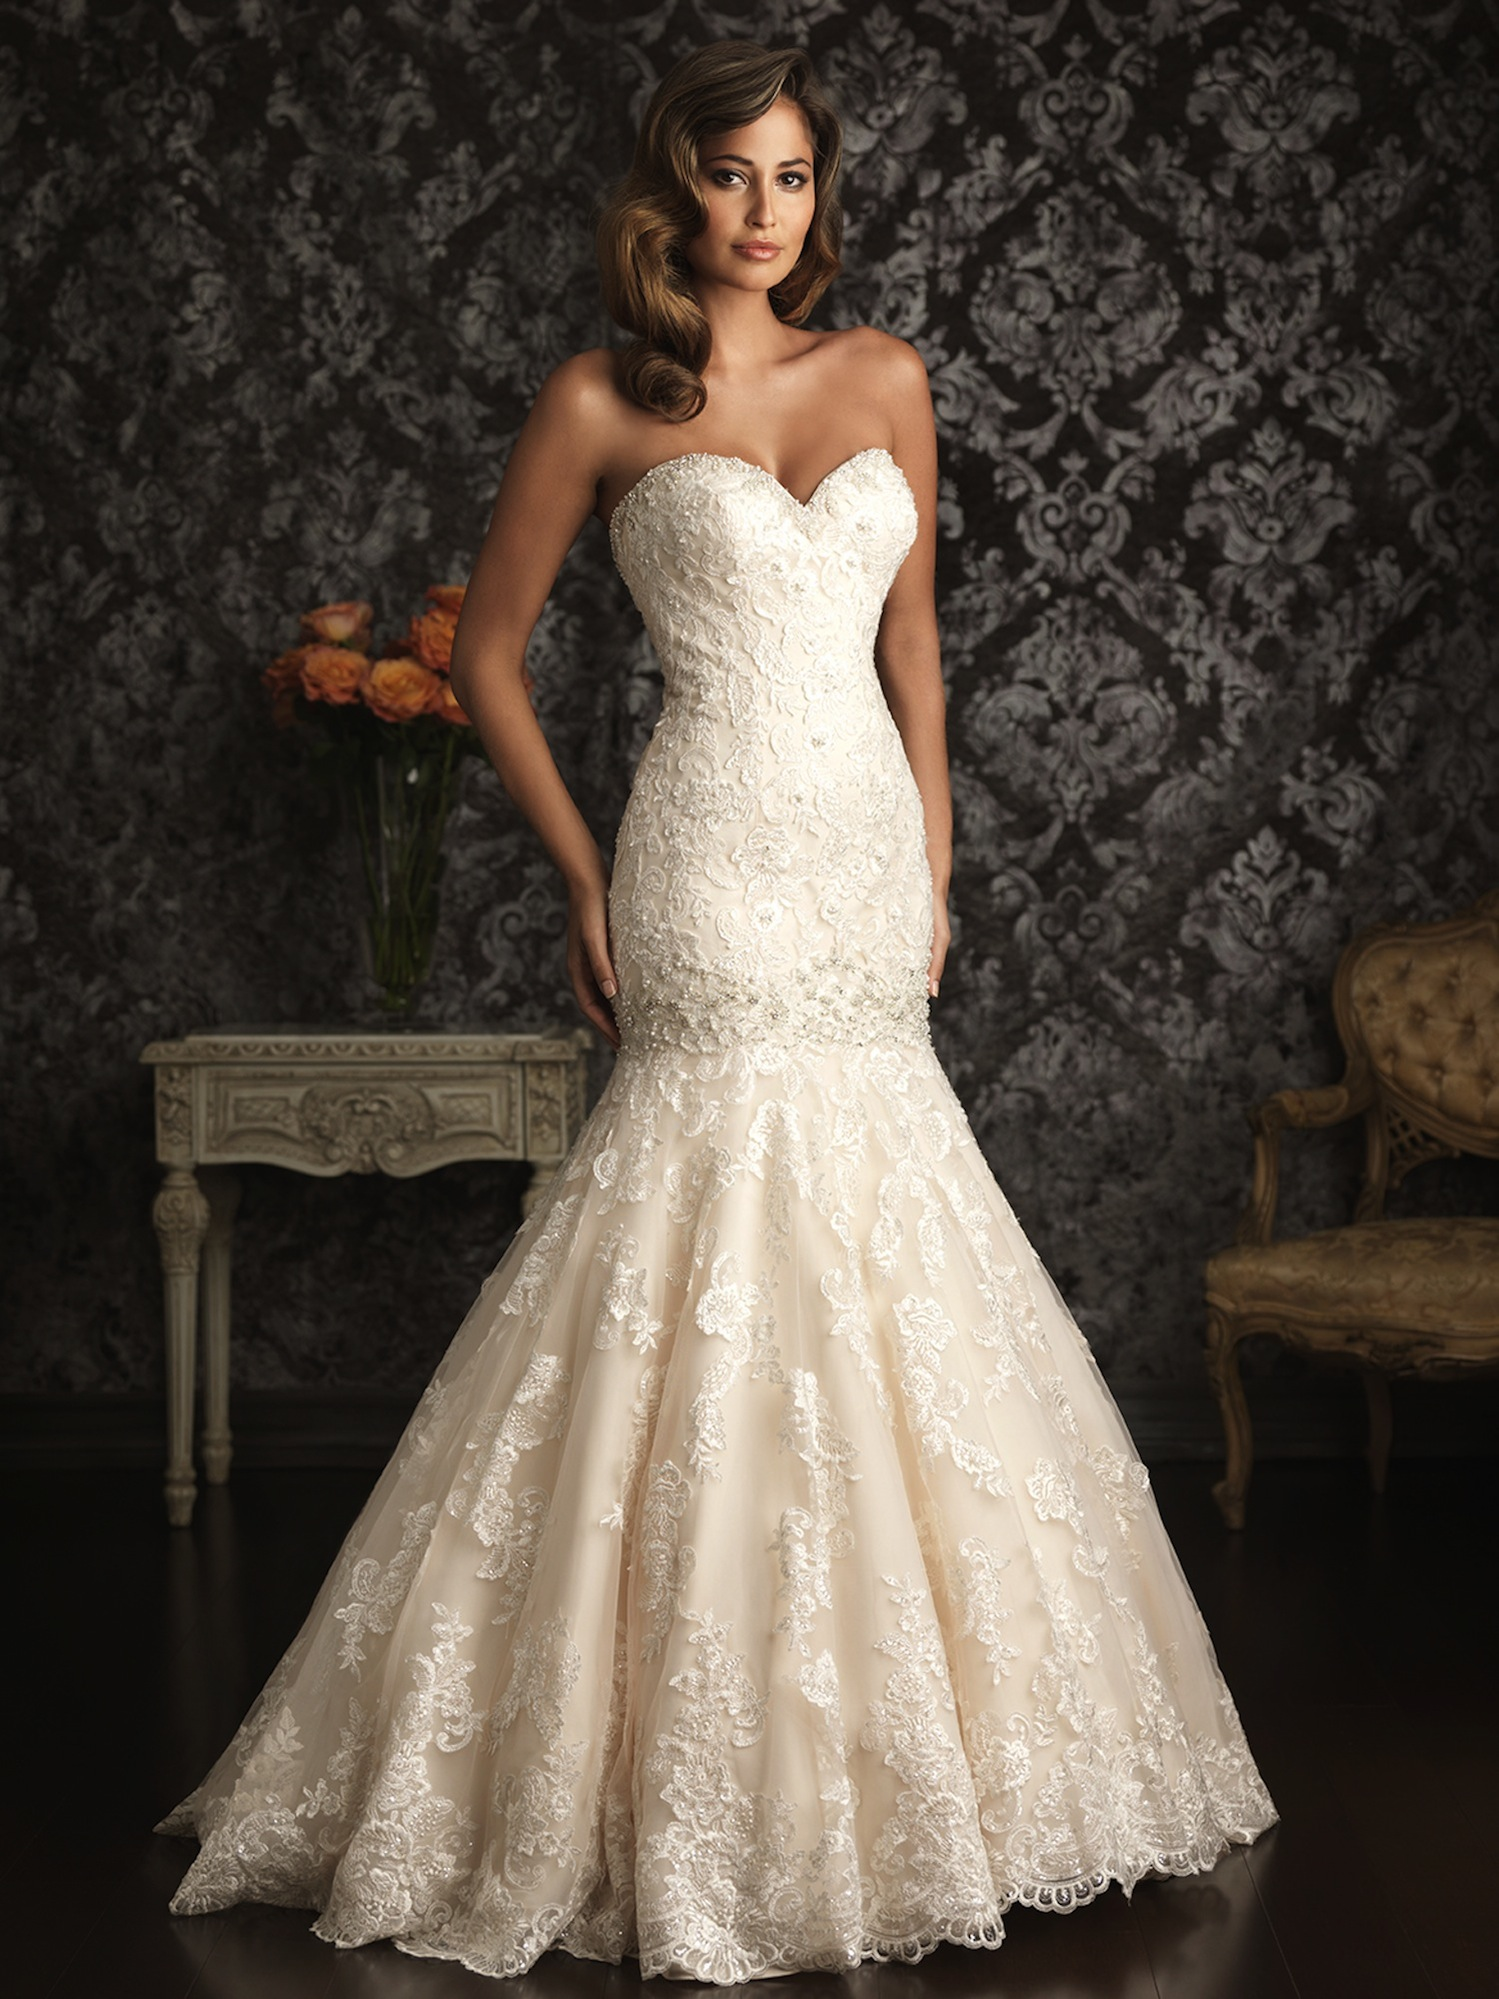 2013 Allure Bridals Wedding Dress Bridal Gown Allure Collection 9018